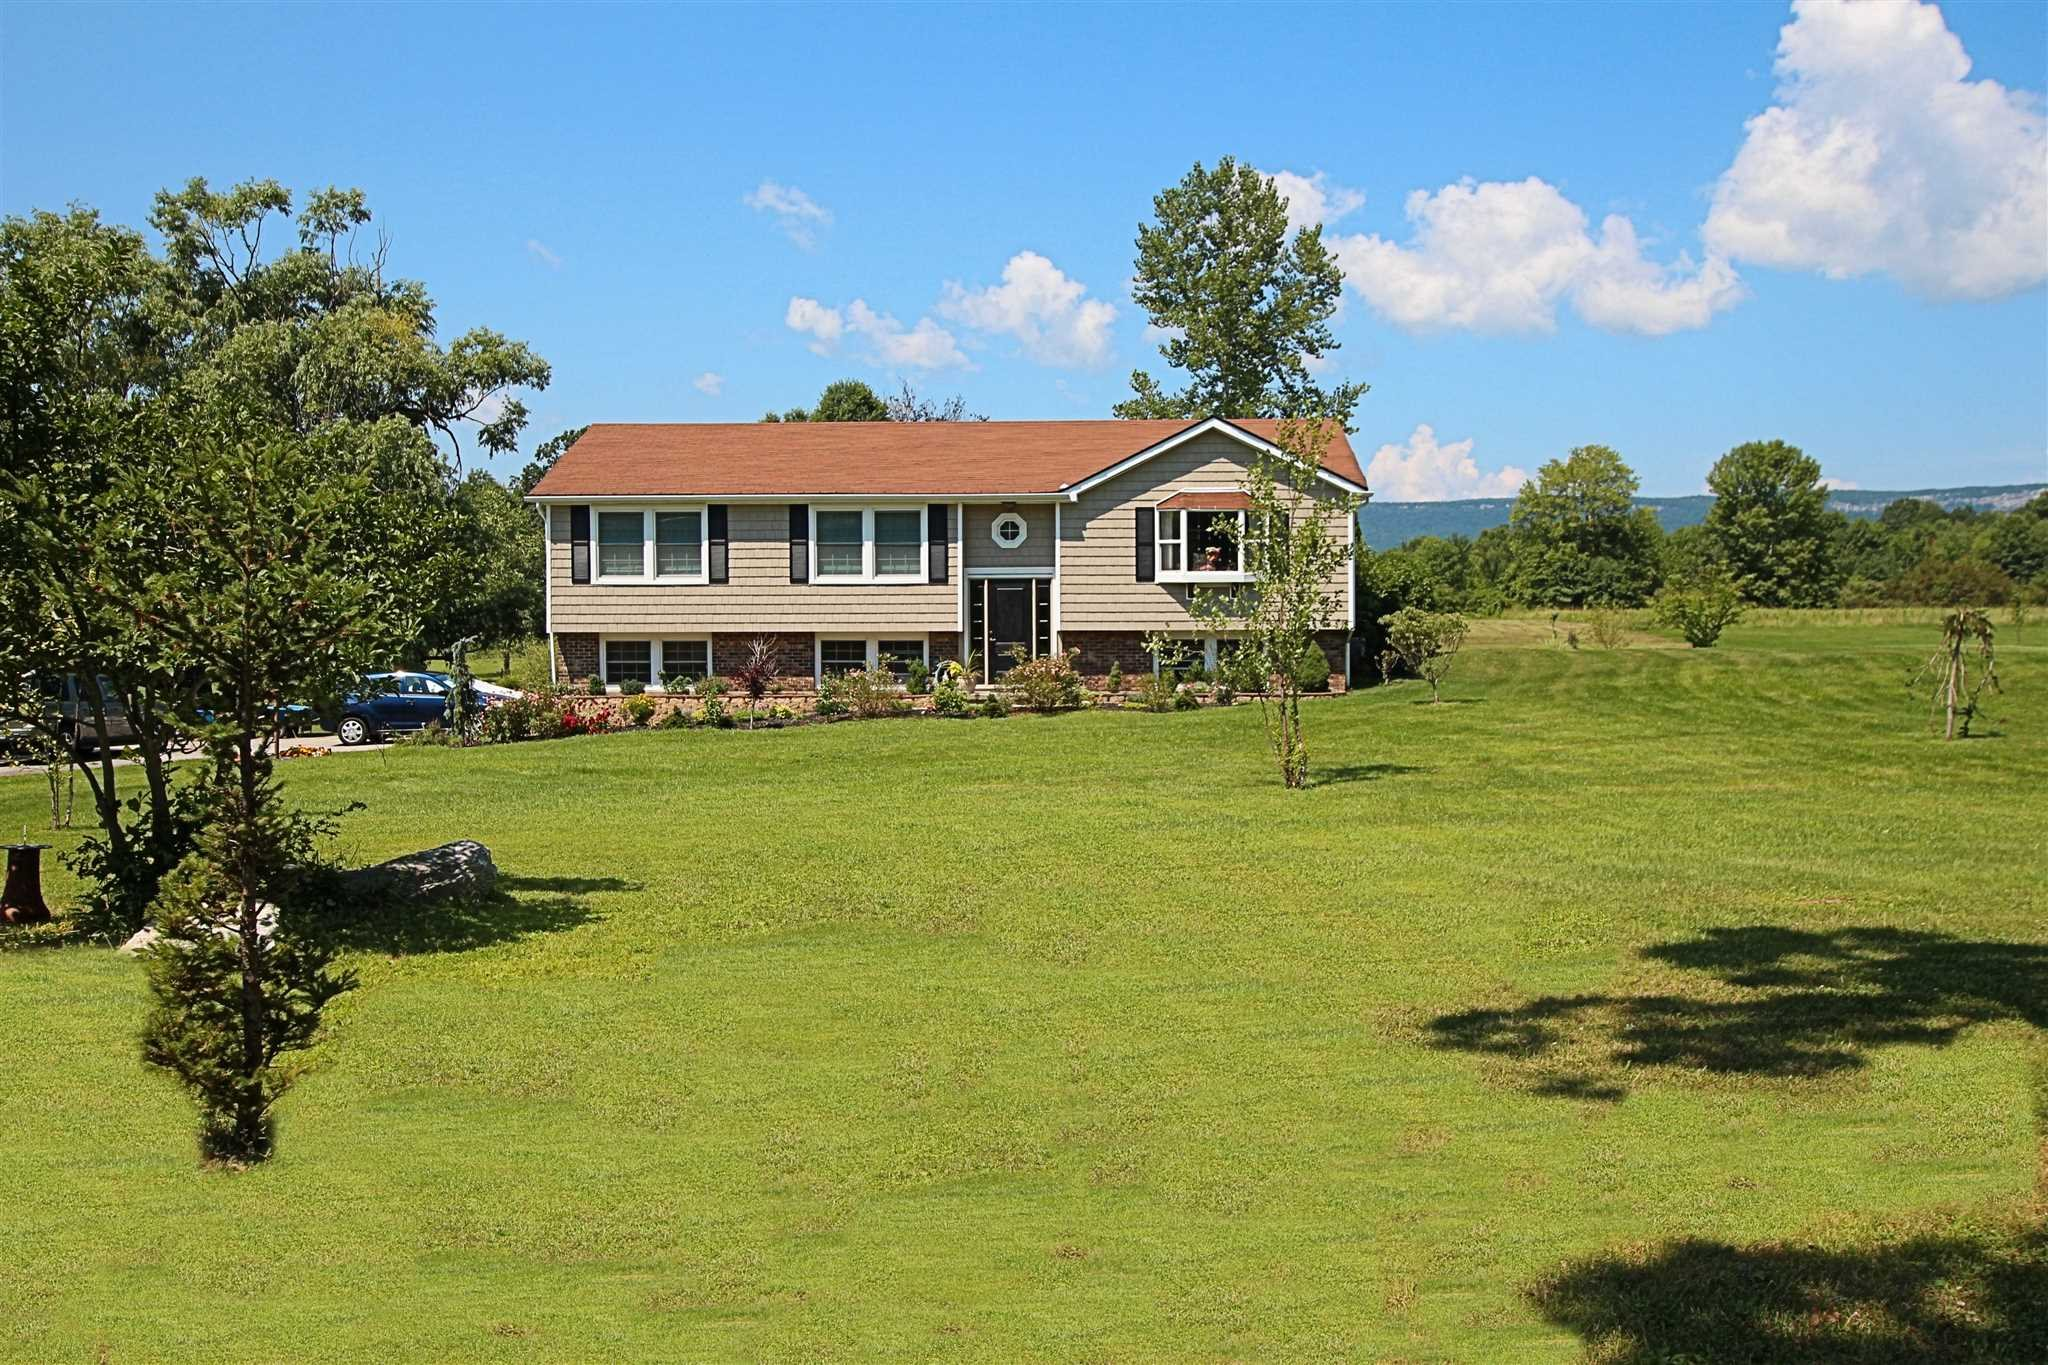 Single Family Home for Sale at 1180 ALBANY POST ROAD 1180 ALBANY POST ROAD Gardiner, New York 12525 United States